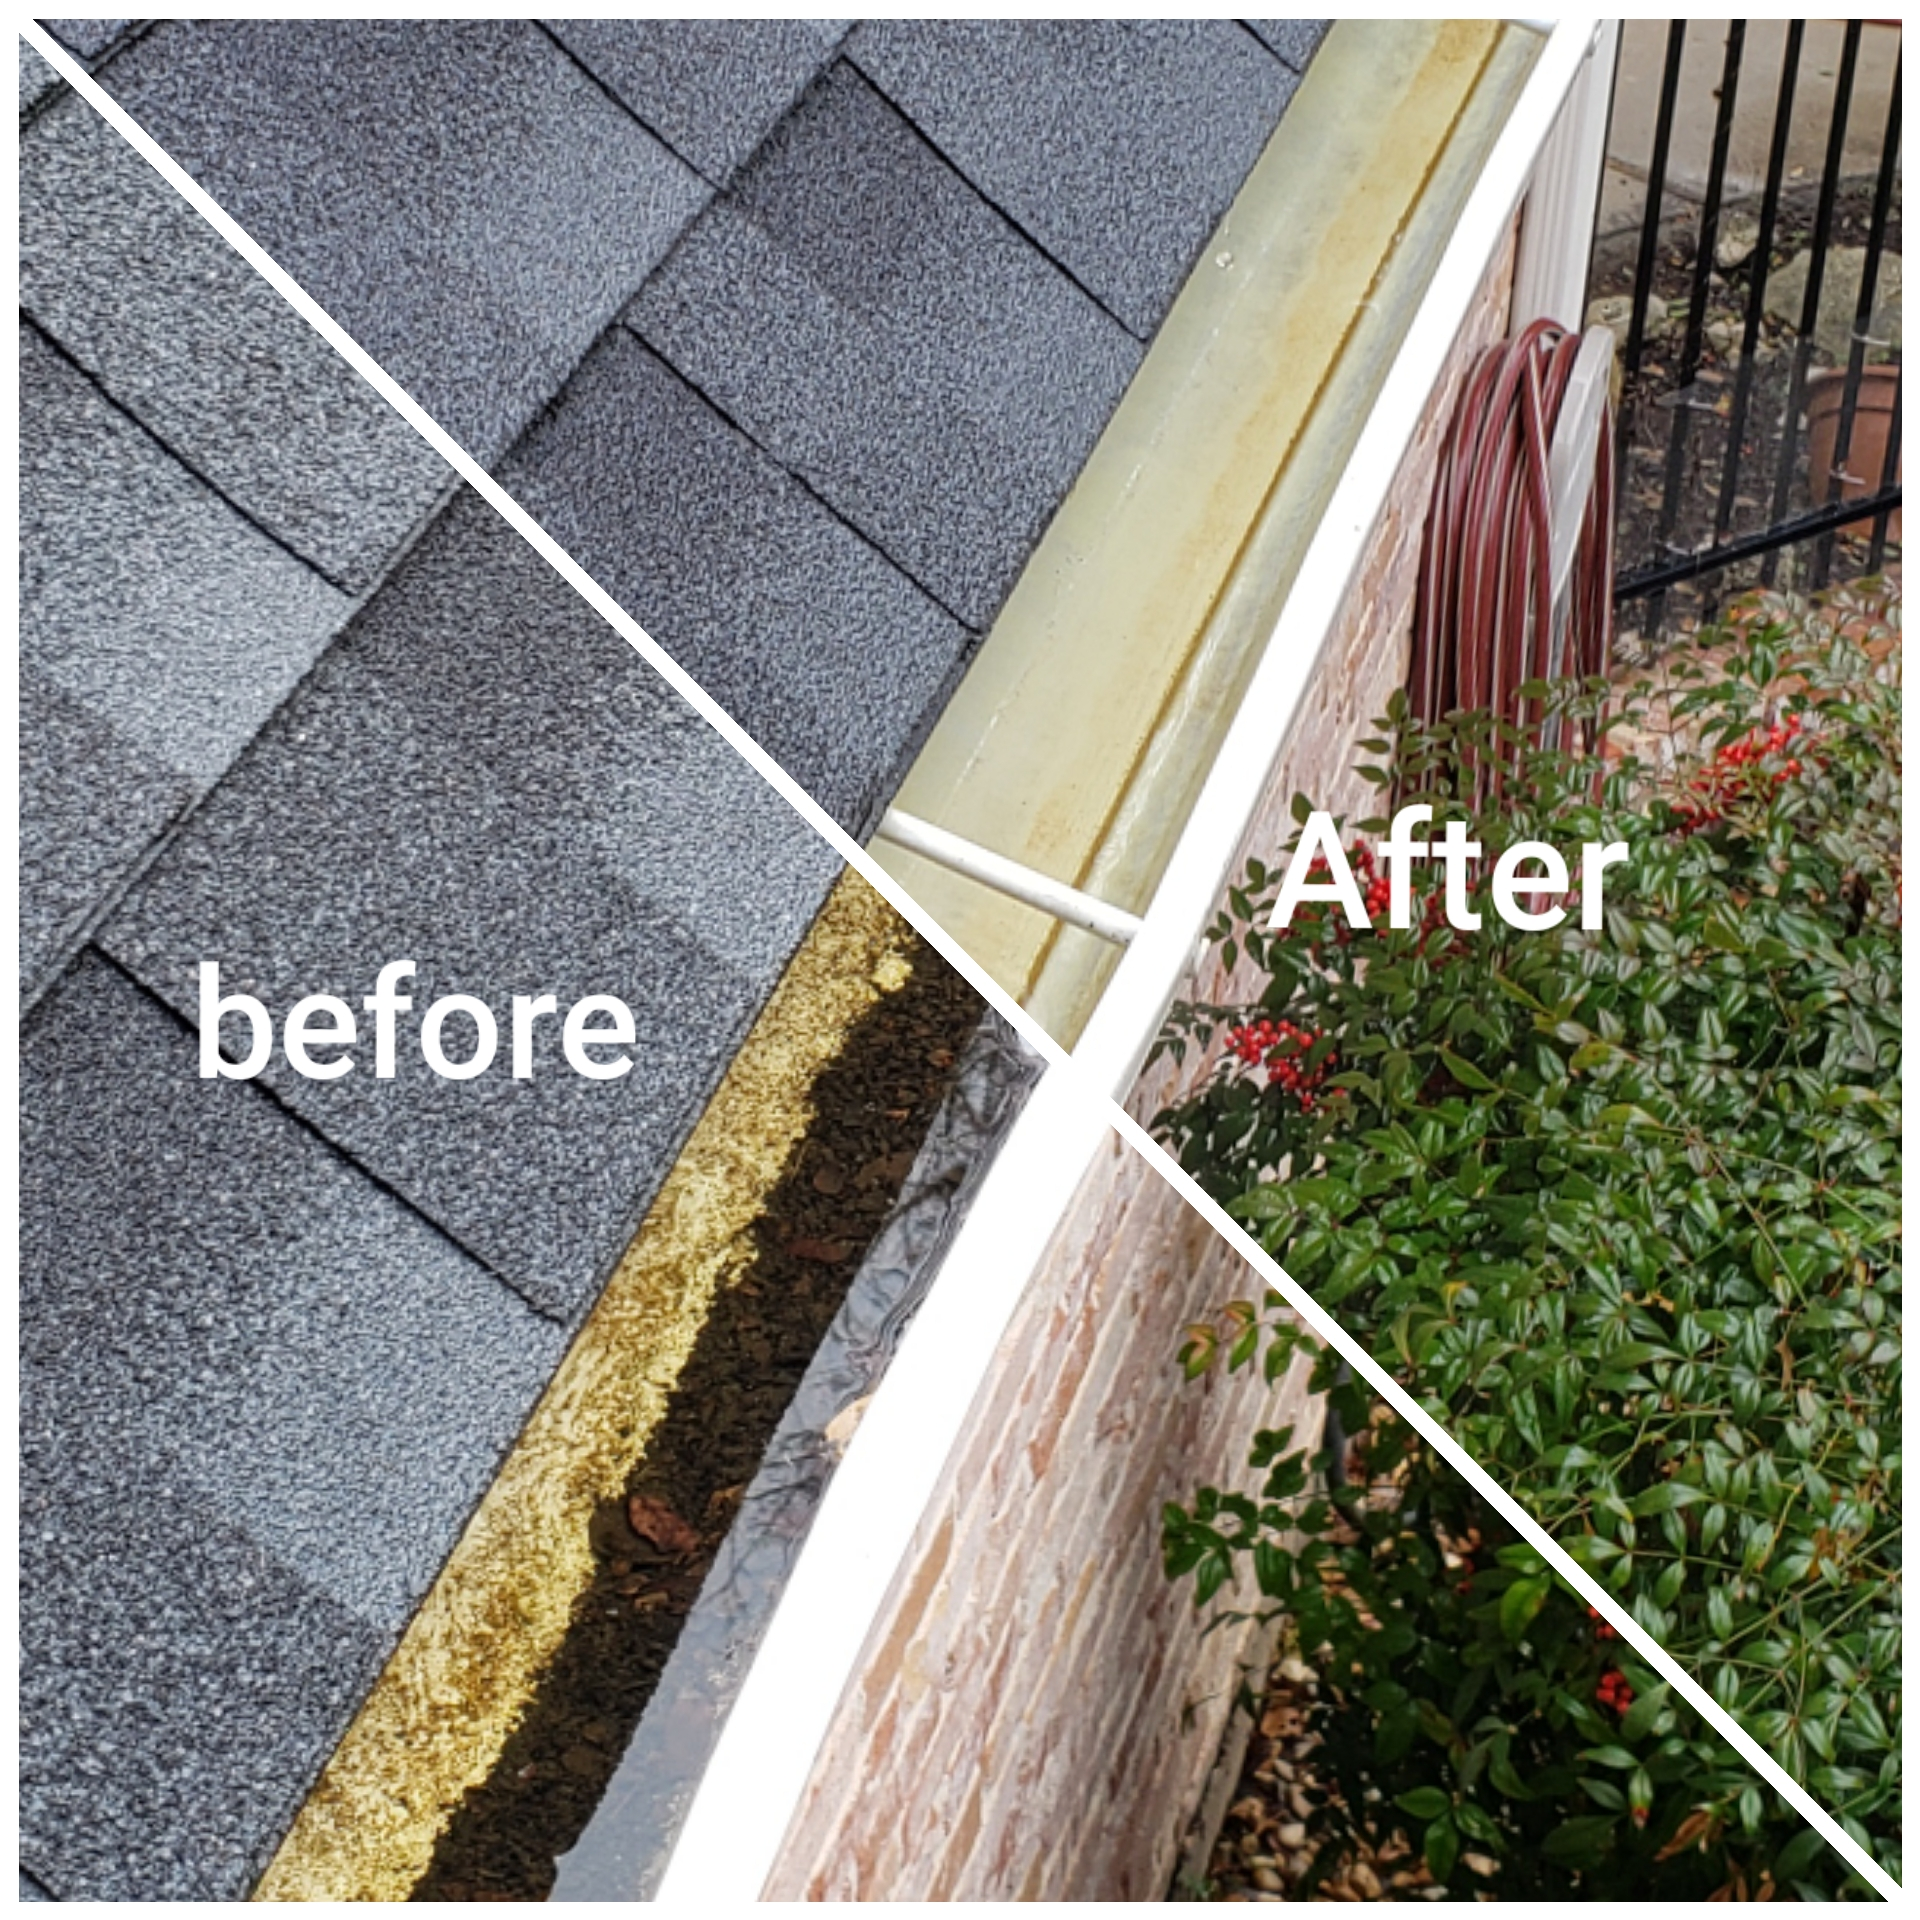 Gutter Before & After